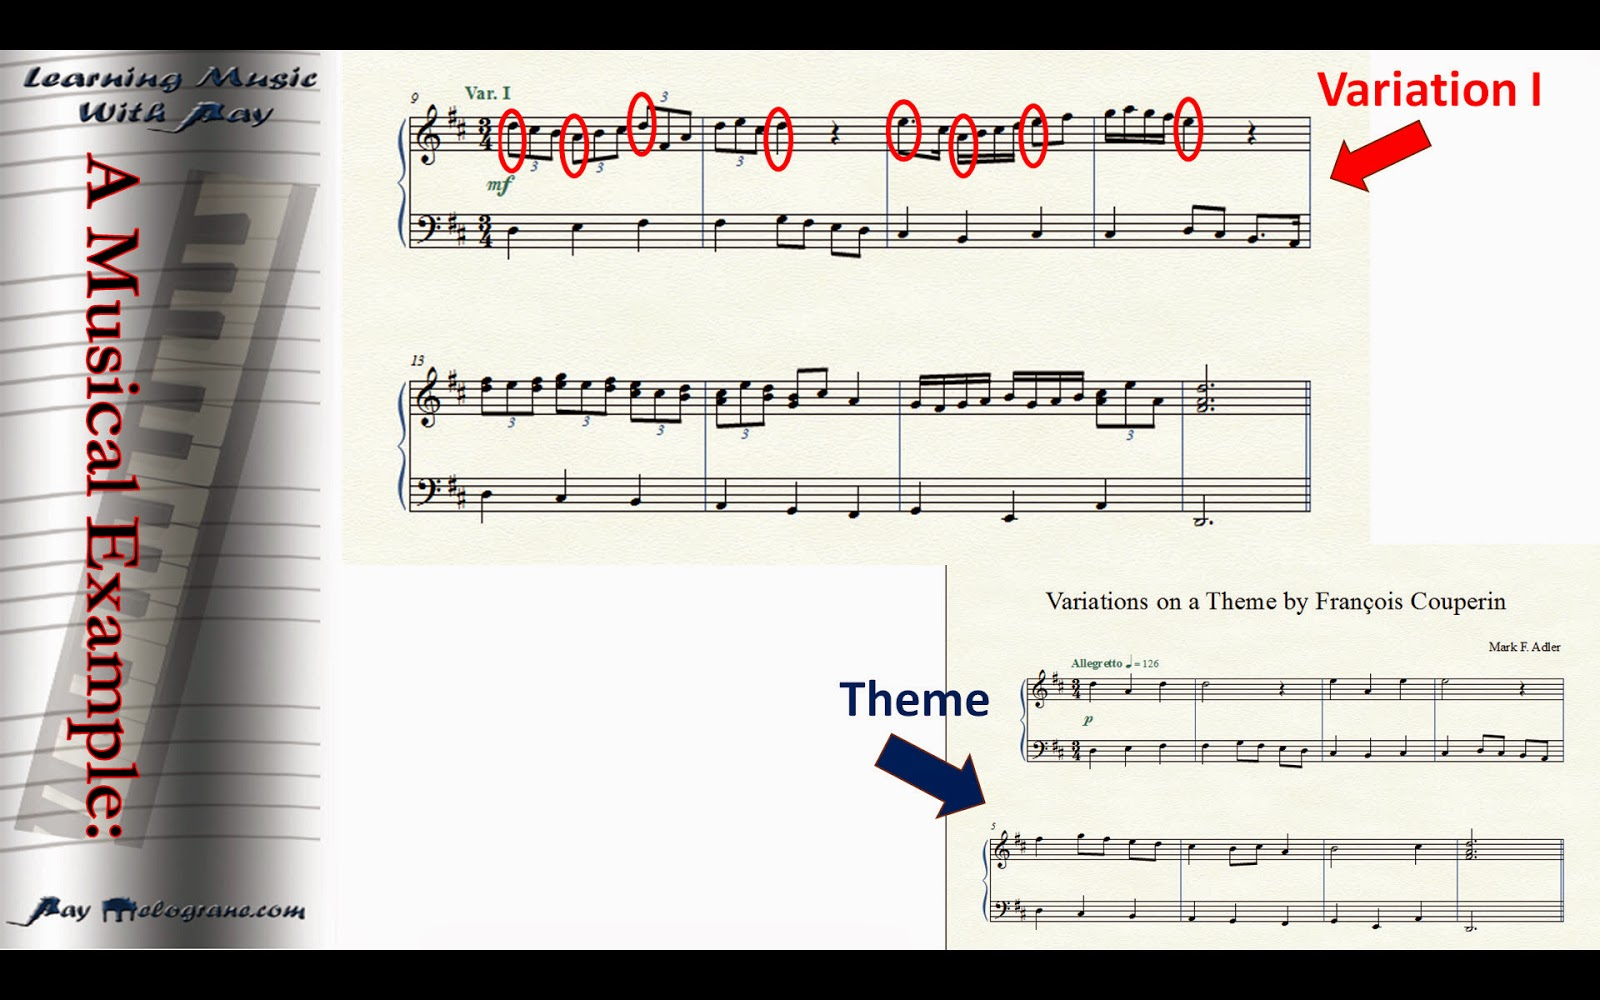 Learning Music With Ray Blog: Theme and Variations Form